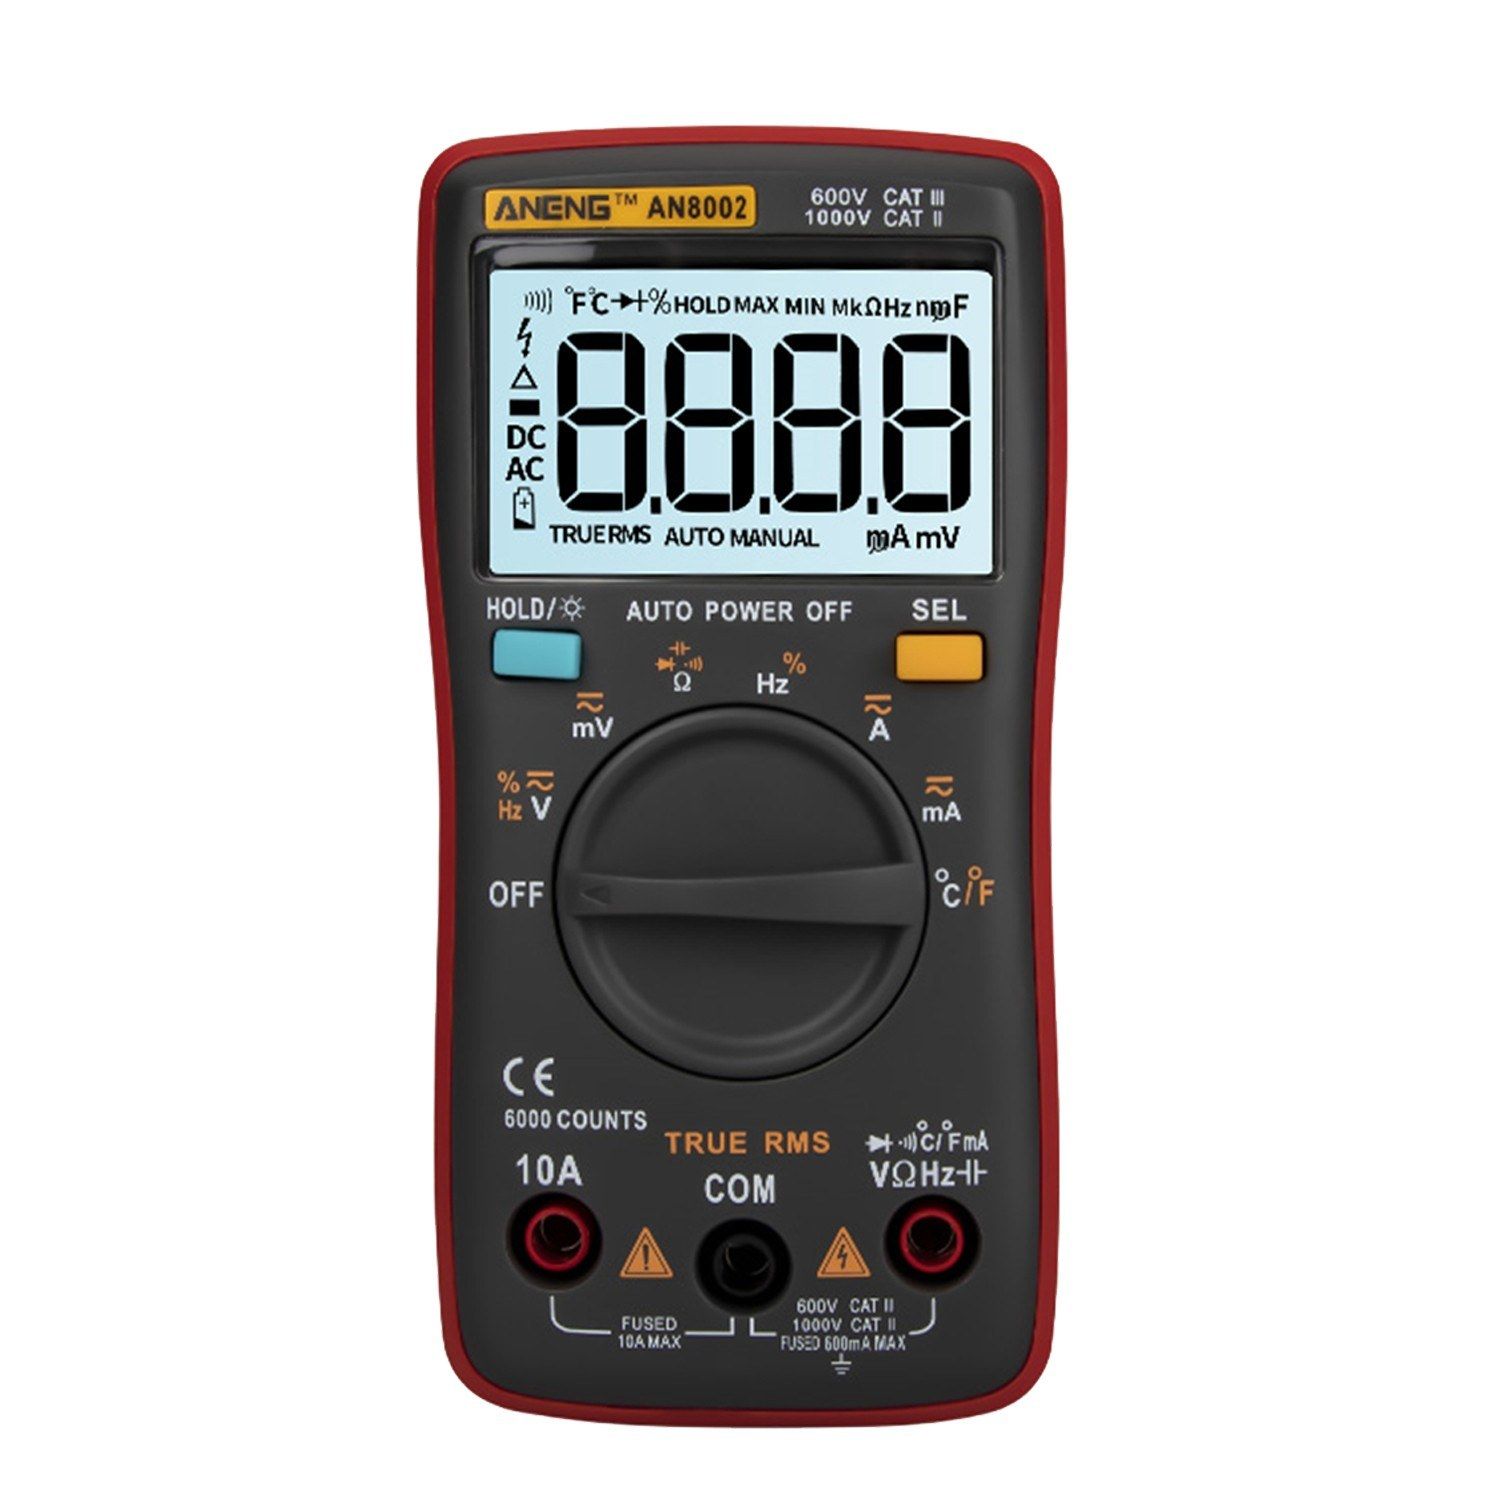 ANENG AN8002 6000 Counts True RMS Multifunctional Digital Multimeter Voltmeter Ammeter Handheld Mini Universal Meter High Accuracy Measure Temperature AC/DC Voltage AC/DC Current Resistance Capacitance Frequency Duty Cycle Diode Tester